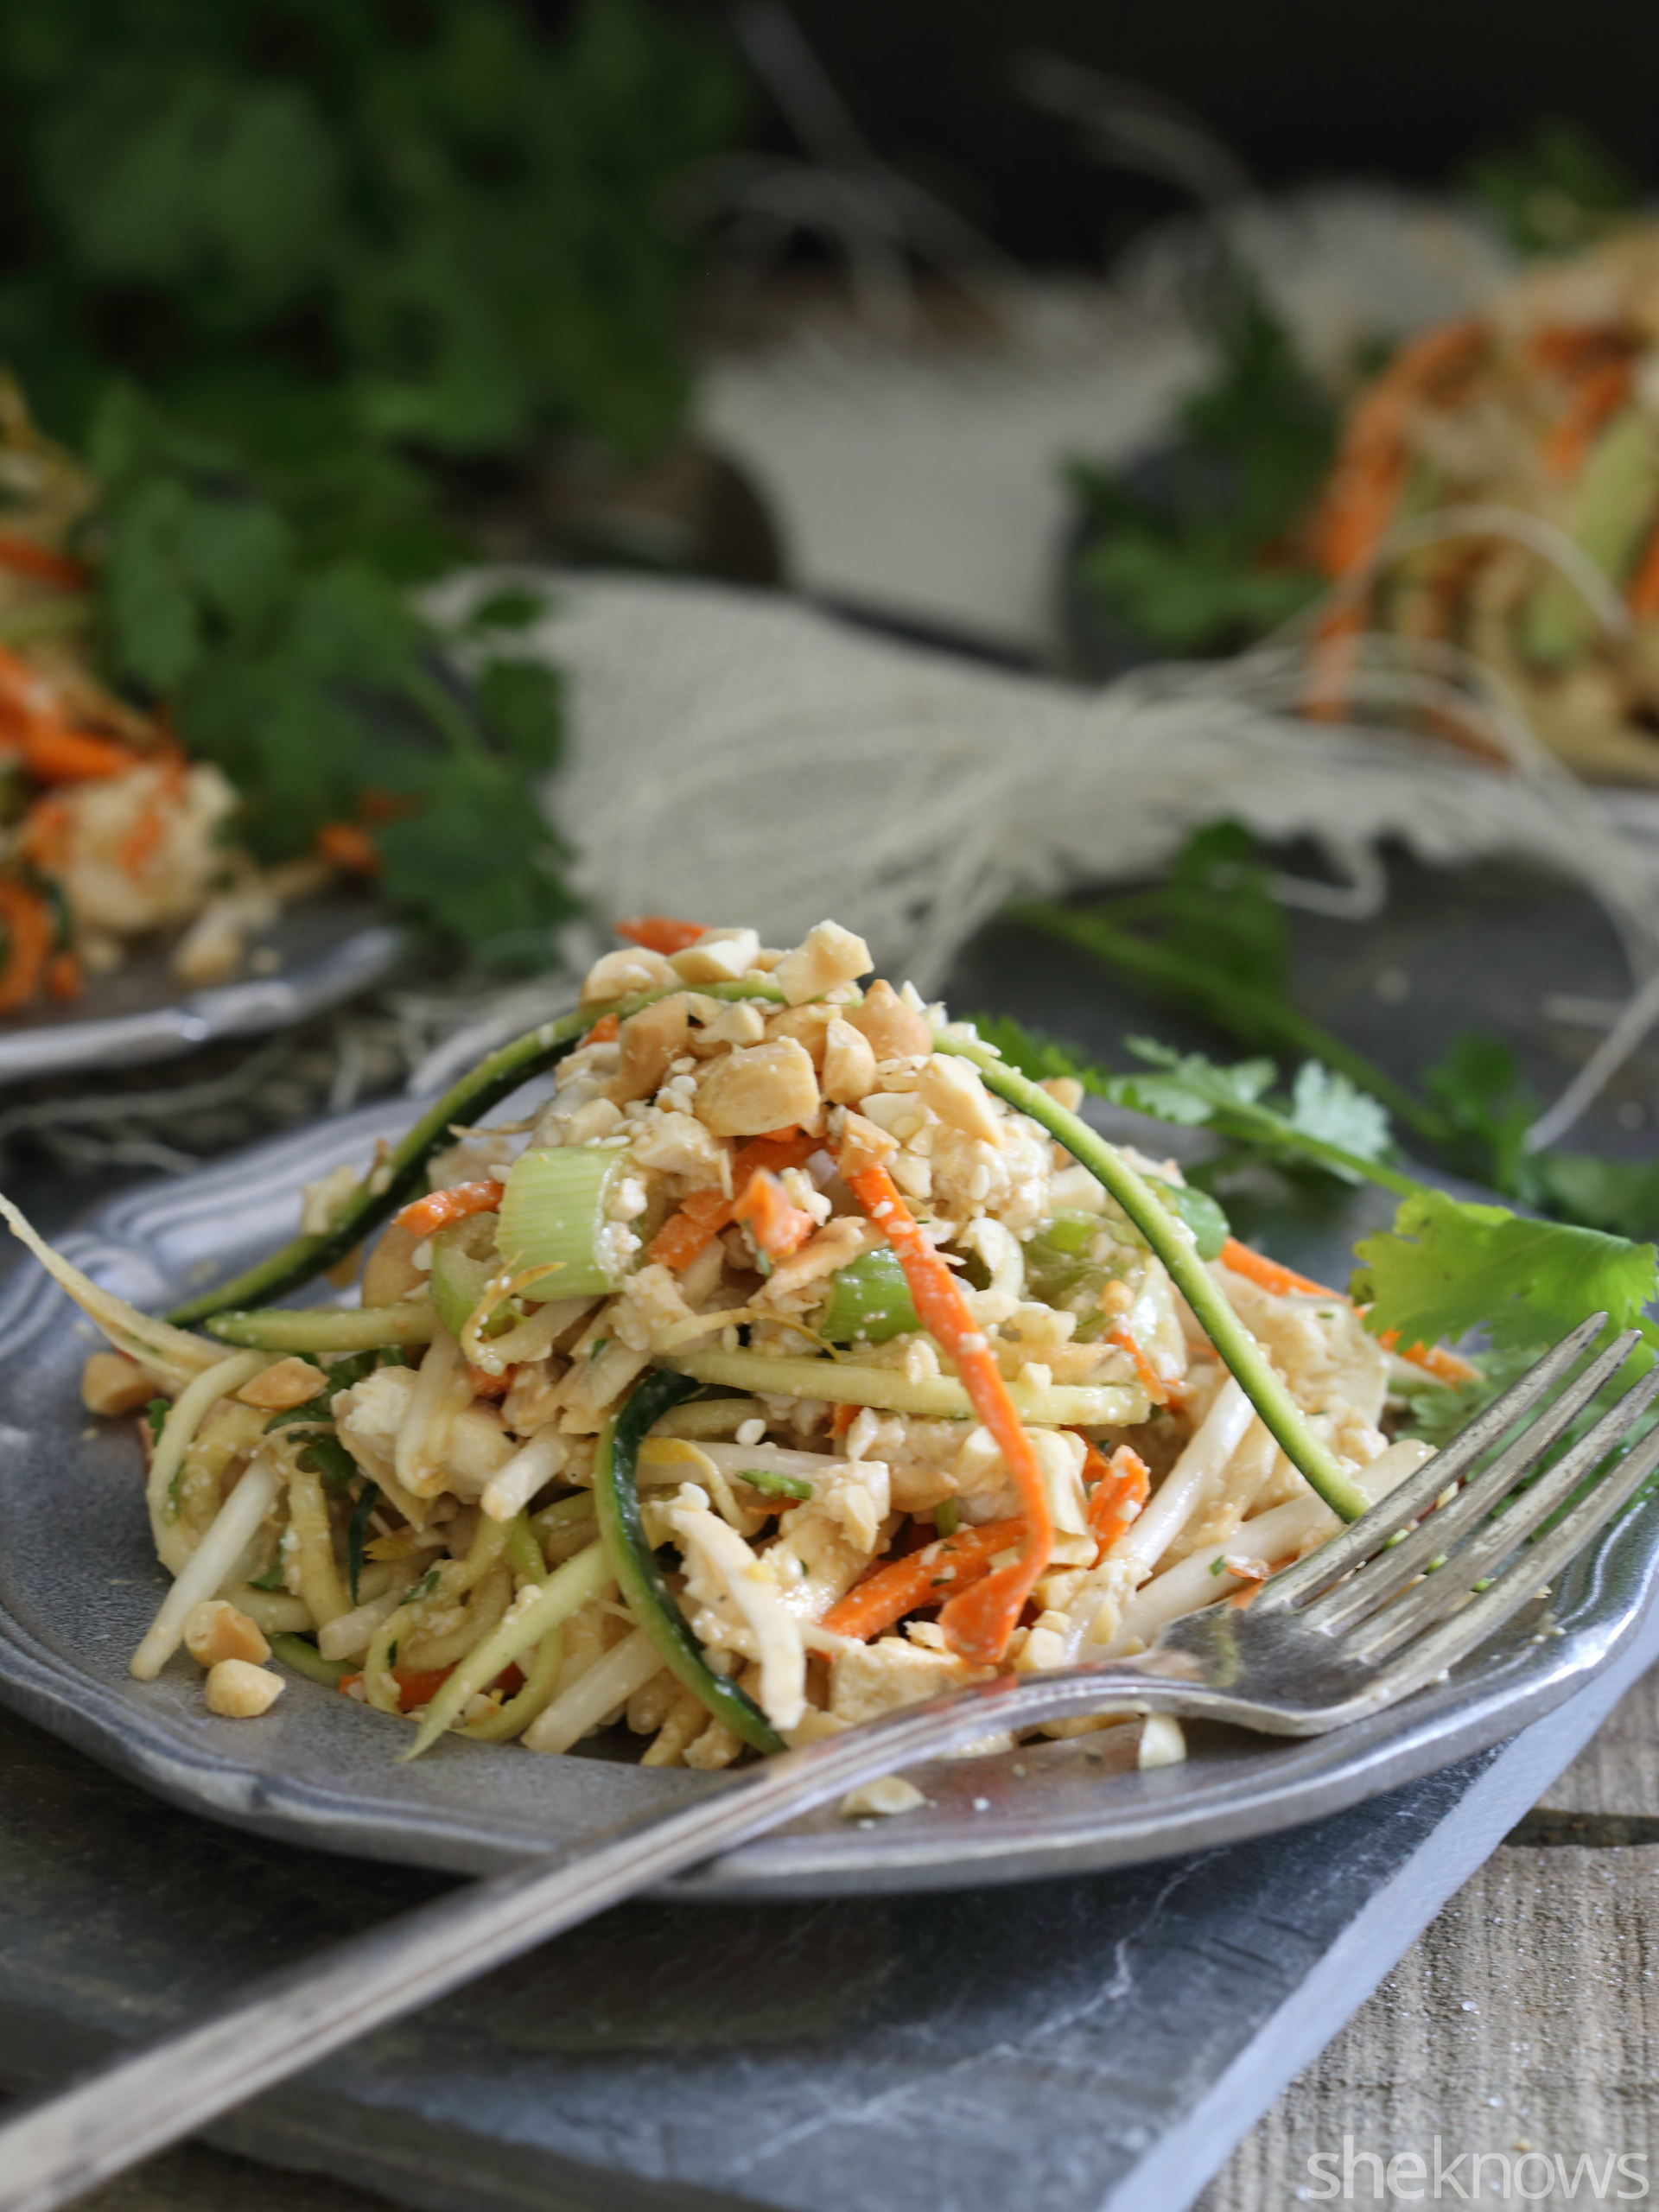 Thai Takeout 20-minute Noodleless Pad Thai Is A Healthy Take On Takeout